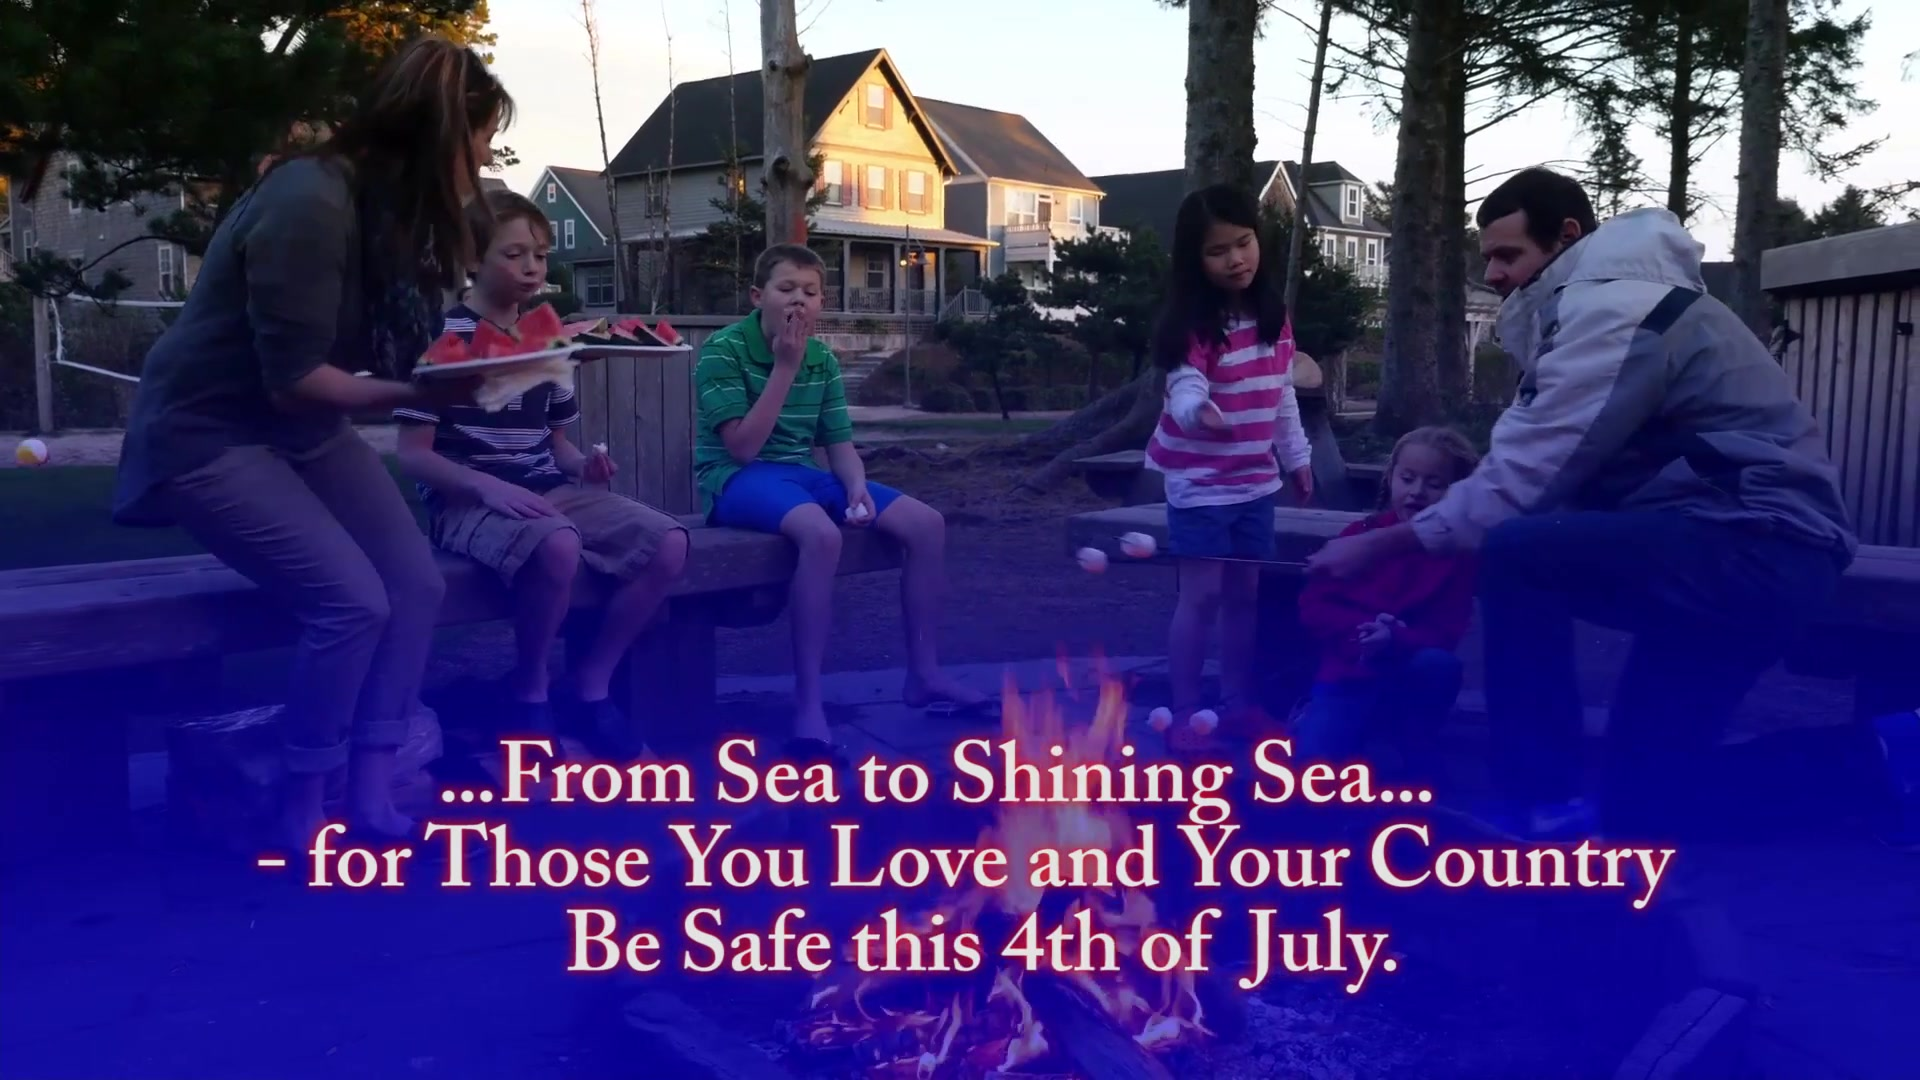 A 4th of July holiday message video from the U.S. Air Force Safety Center